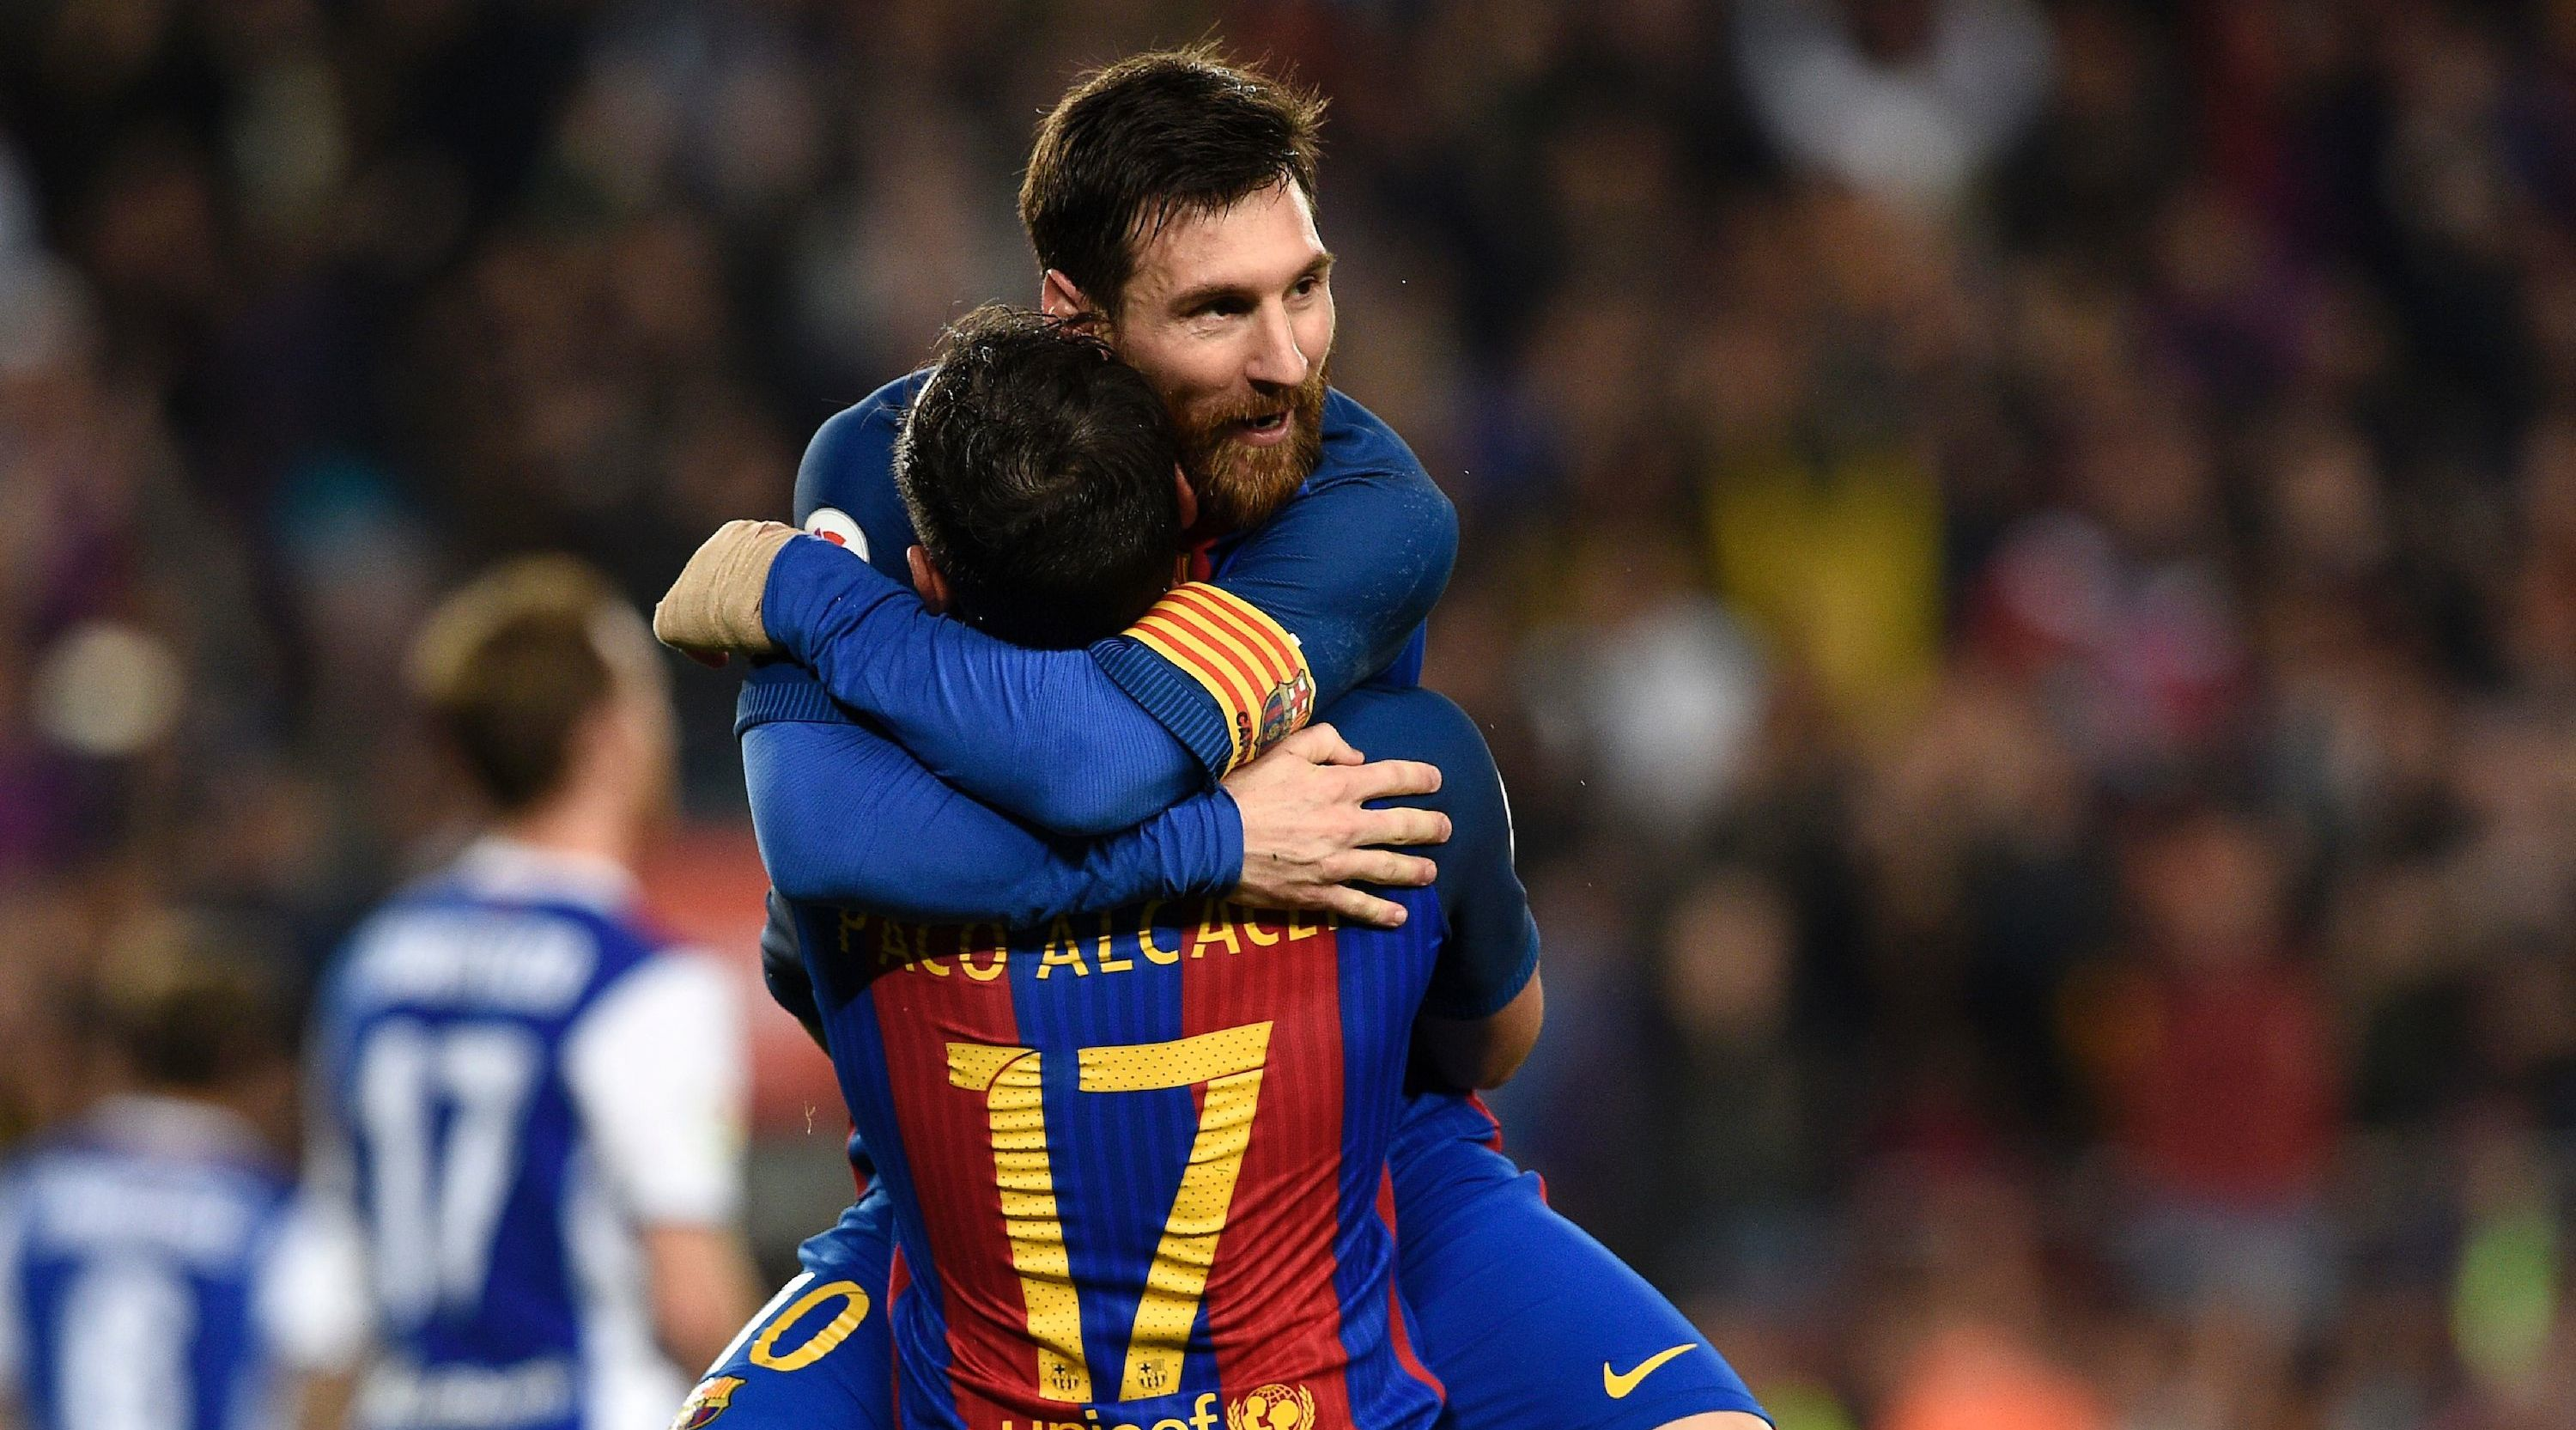 Barcelona's forward Paco Alcacer (bottom) celebrates a goal with Barcelona's Argentinian forward Lionel Messi during the Spanish league football match FC Barcelona vs Real Sociedad at the Camp Nou stadium in Barcelona on April 15, 2017. / AFP PHOTO / LLUIS GENE (Photo credit should read LLUIS GENE/AFP/Getty Images)